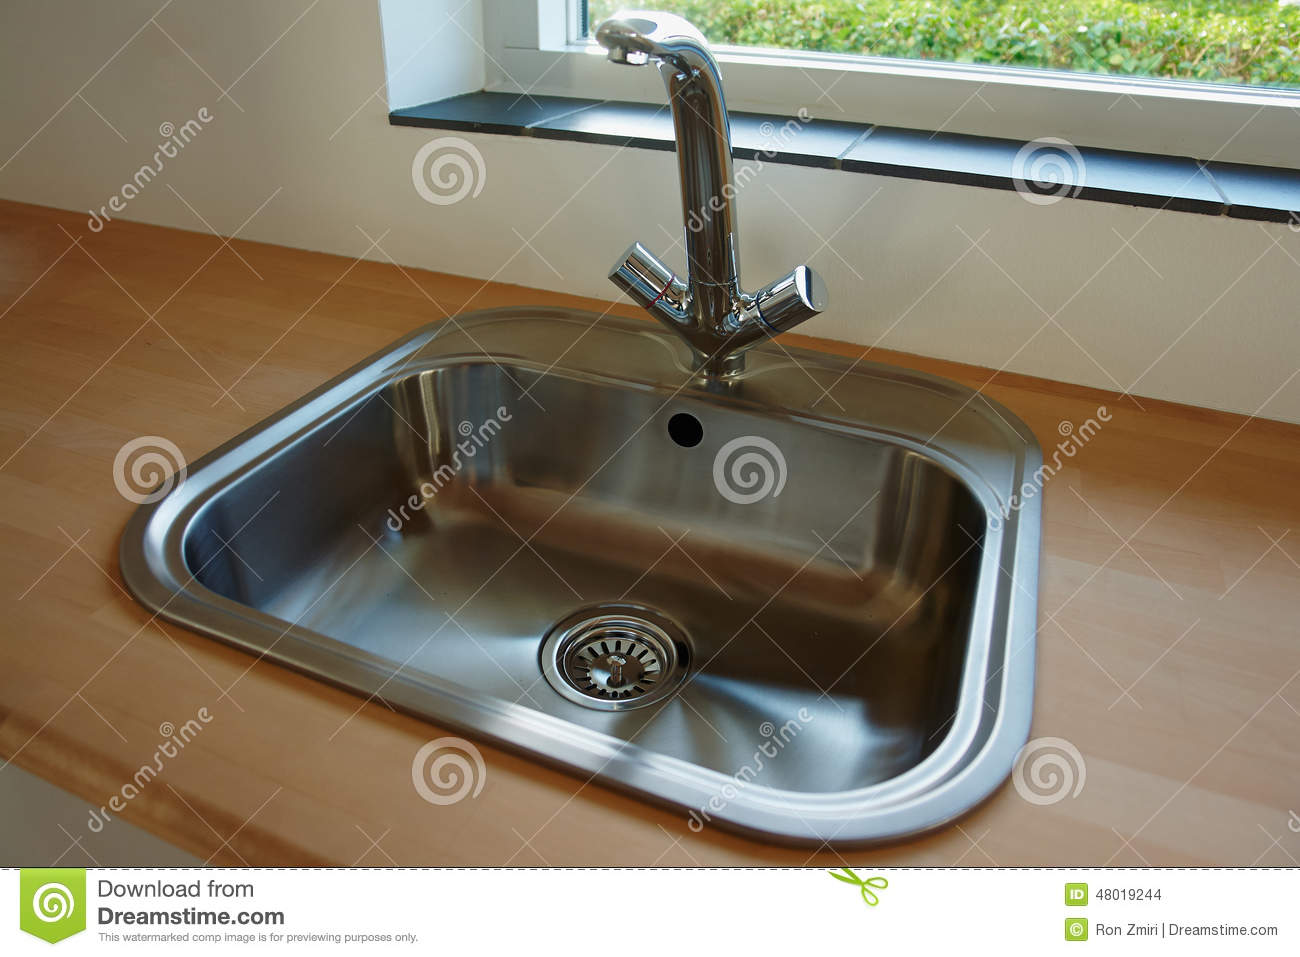 details of modern kitchen sink with tap faucet stock photo image